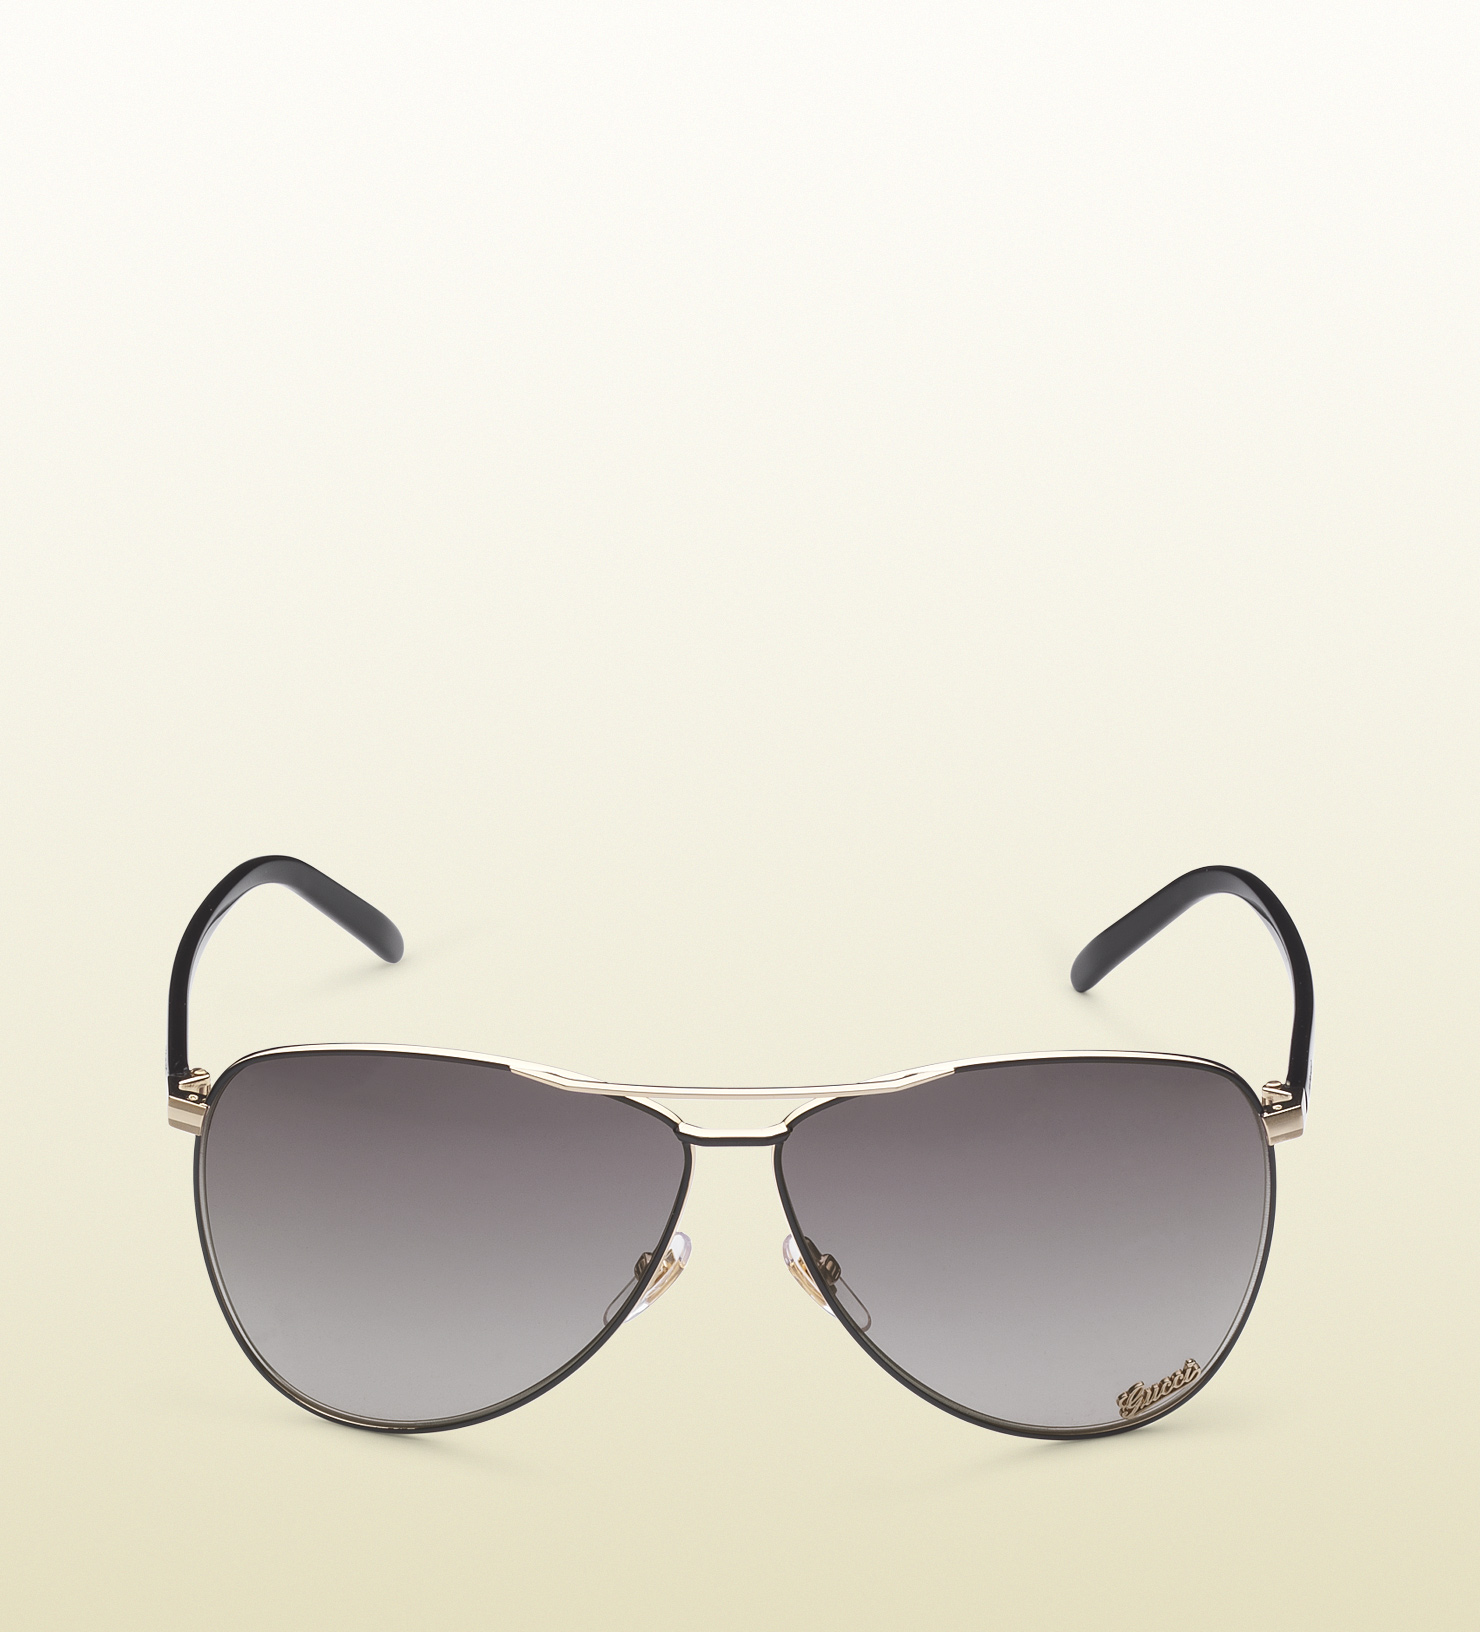 28eeda0278 Lyst - Gucci Aviator Sunglasses with Gucci Signature Pad On Lens and ...